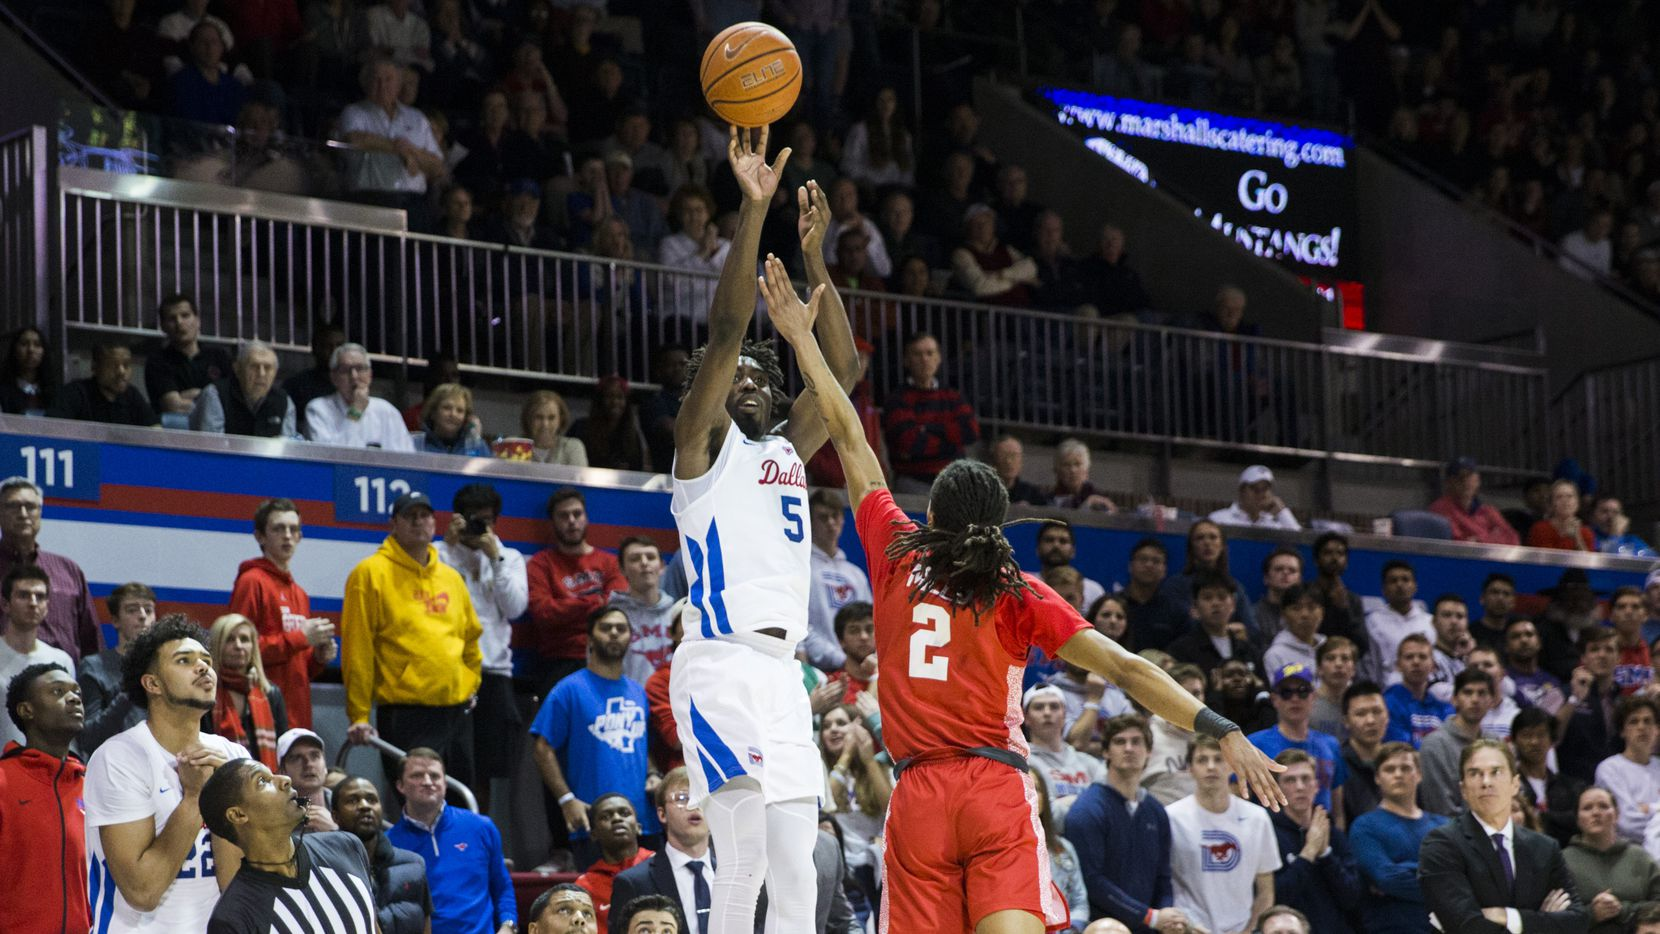 Southern Methodist Mustangs guard Emmanuel Bandoumel (5) makes a three pointer to put SMU up by one point in overtime of a basketball game between SMU and University of Houston on Saturday, February 15, 2020 at Moody Coliseum in Dallas. SMU won 73-72 in overtime. (Ashley Landis/The Dallas Morning News)